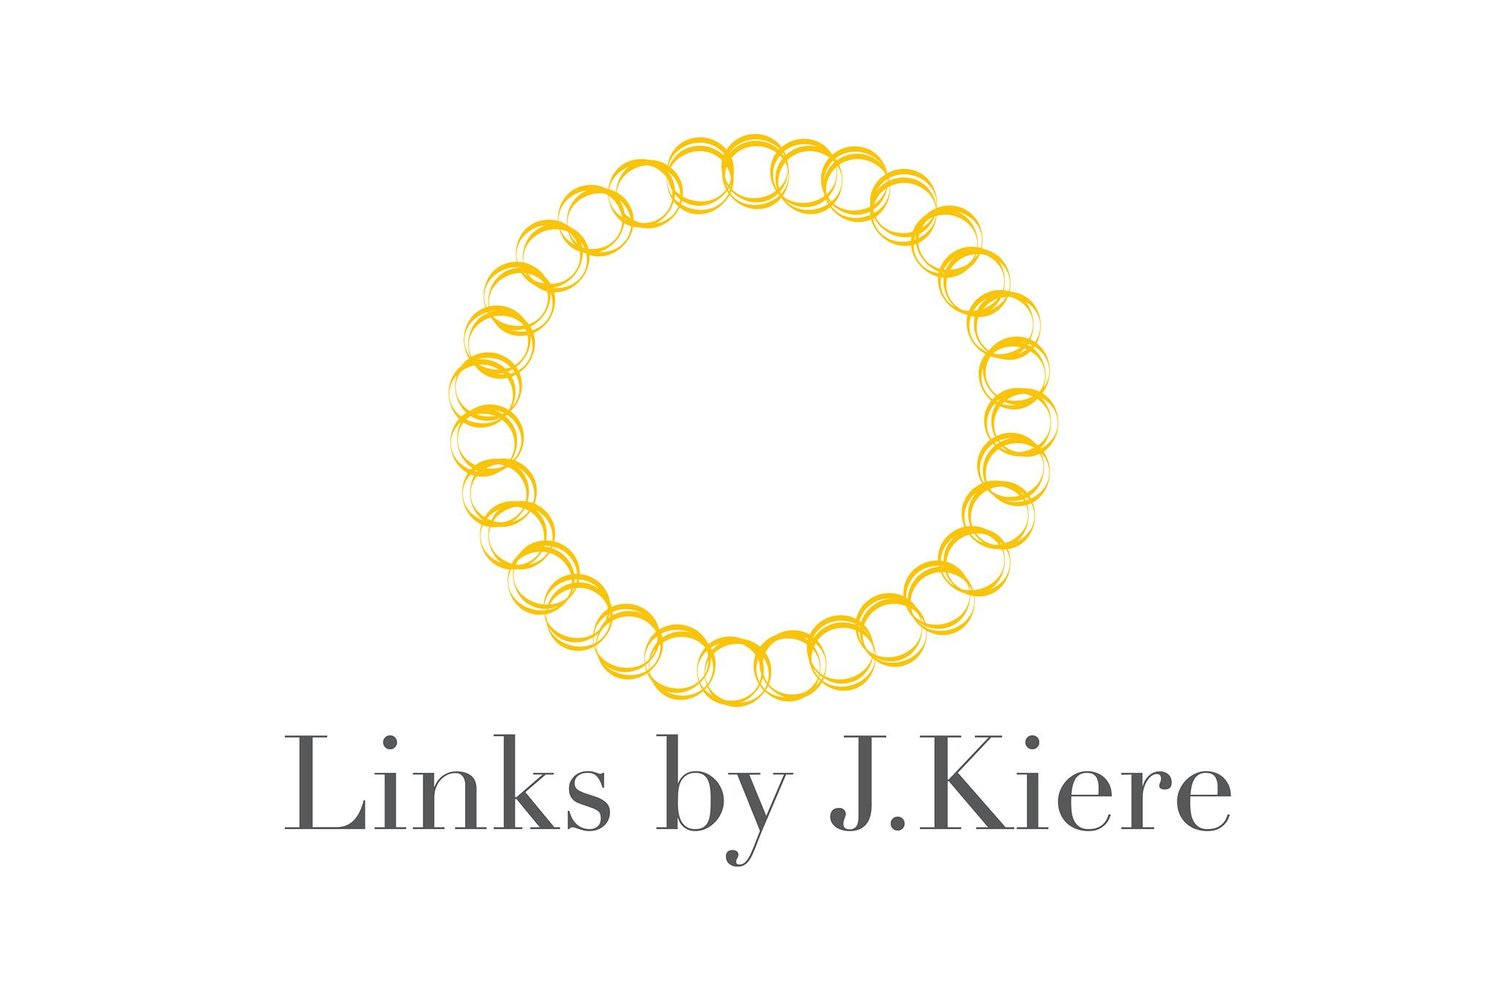 Links by J. Kiere